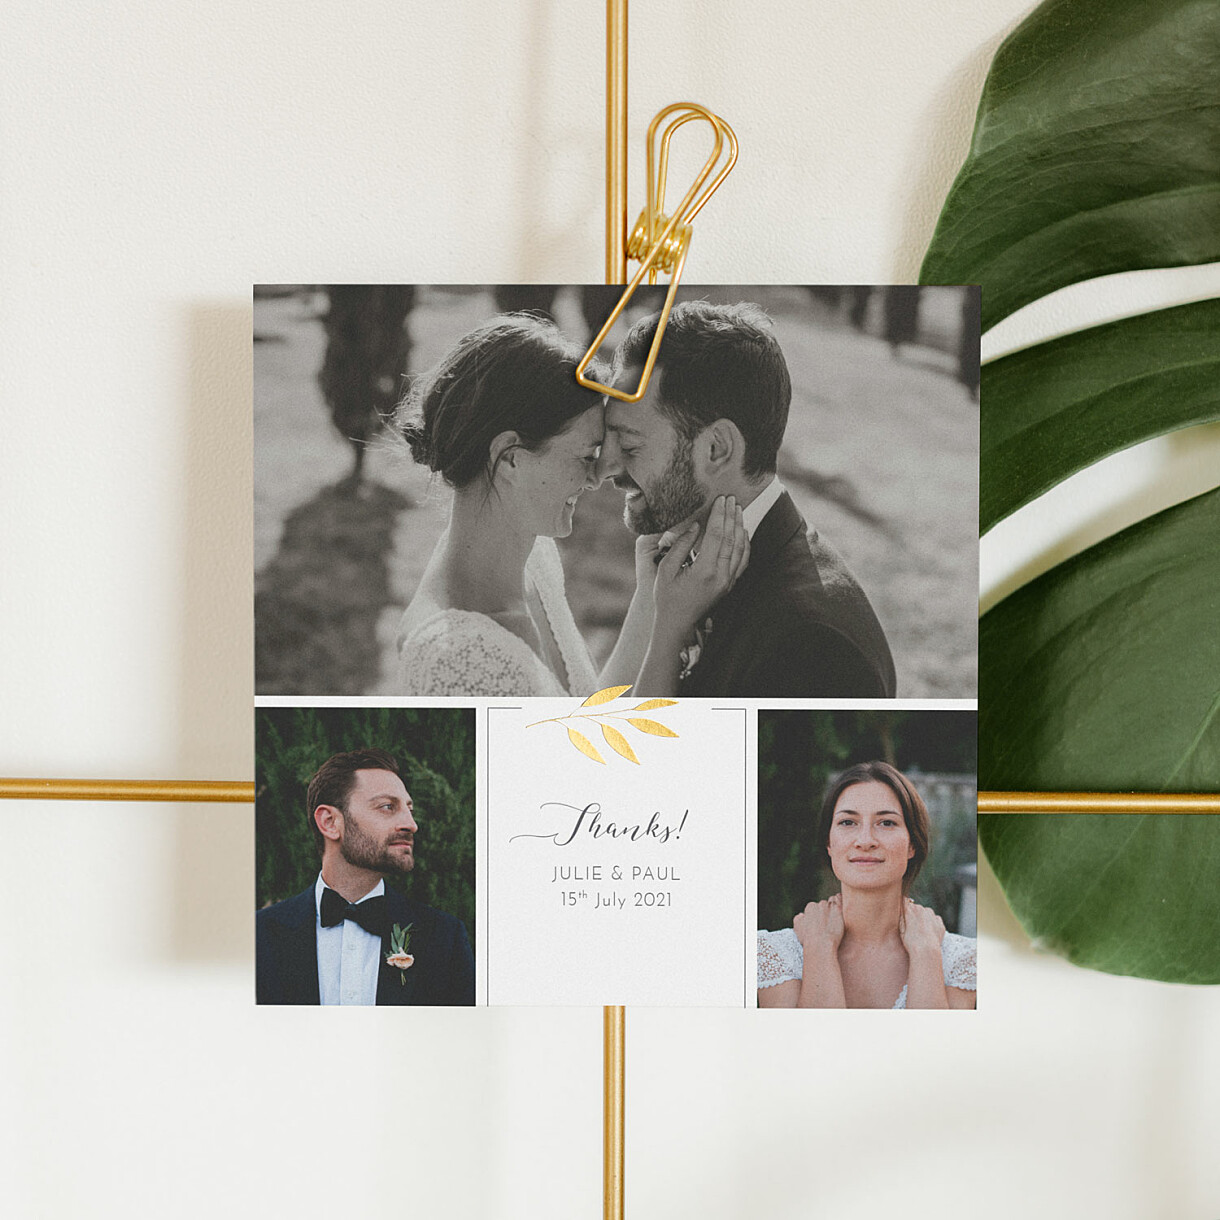 Lovely laurel wedding thank you cards